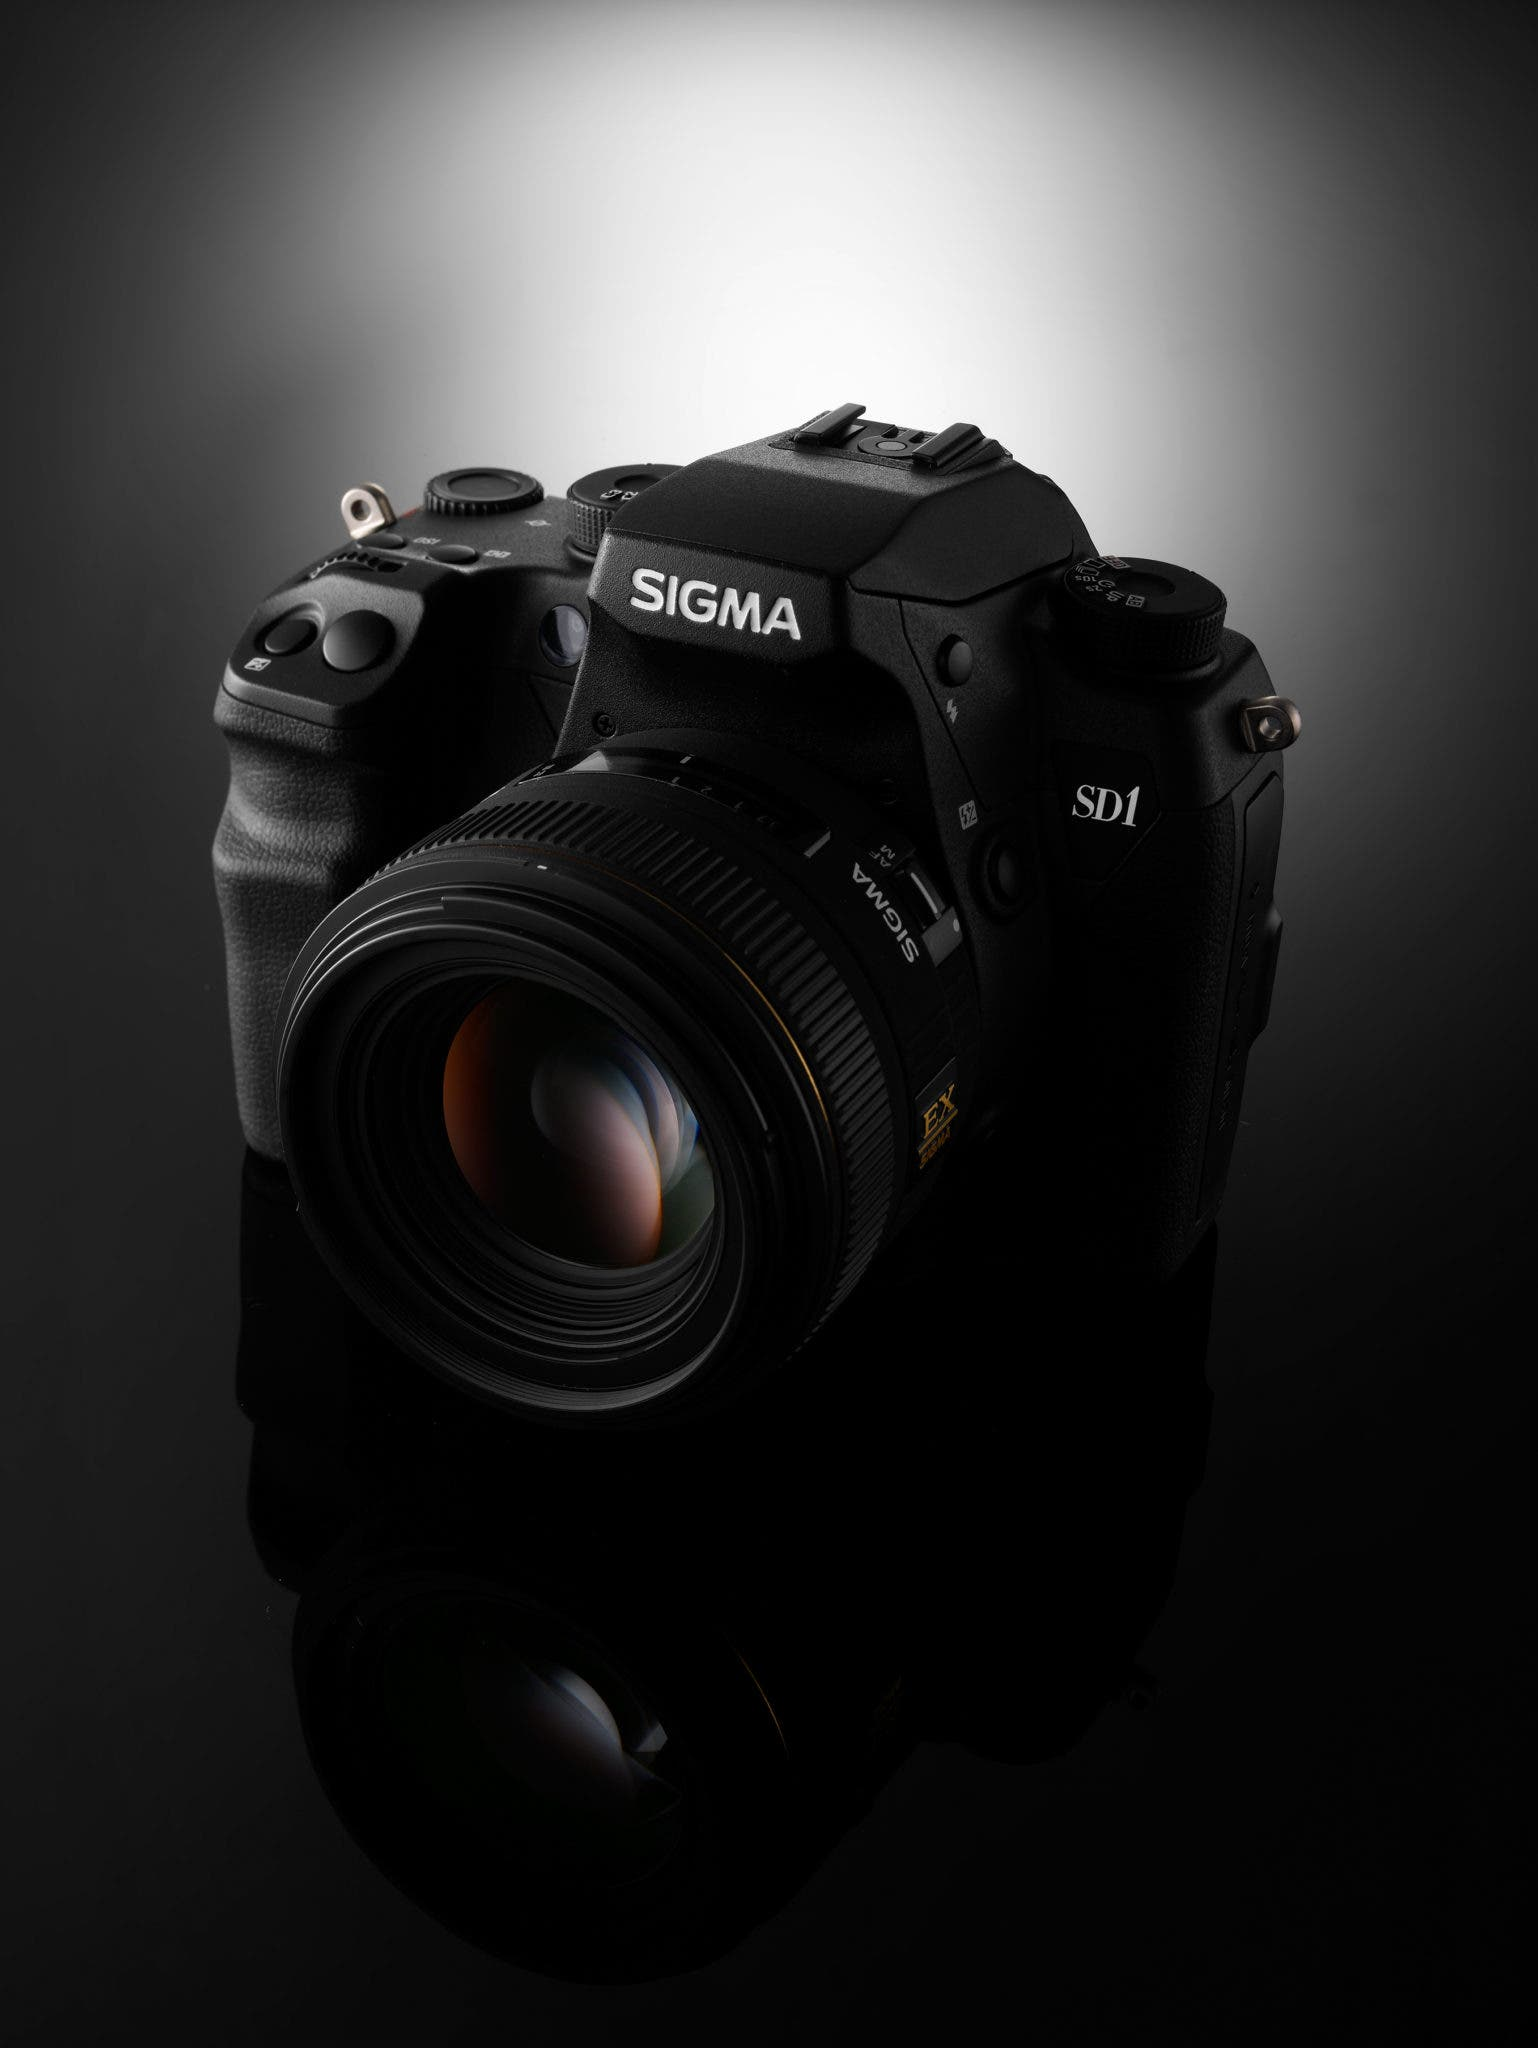 The Sigma SD1 Foveon sensor better be amazing